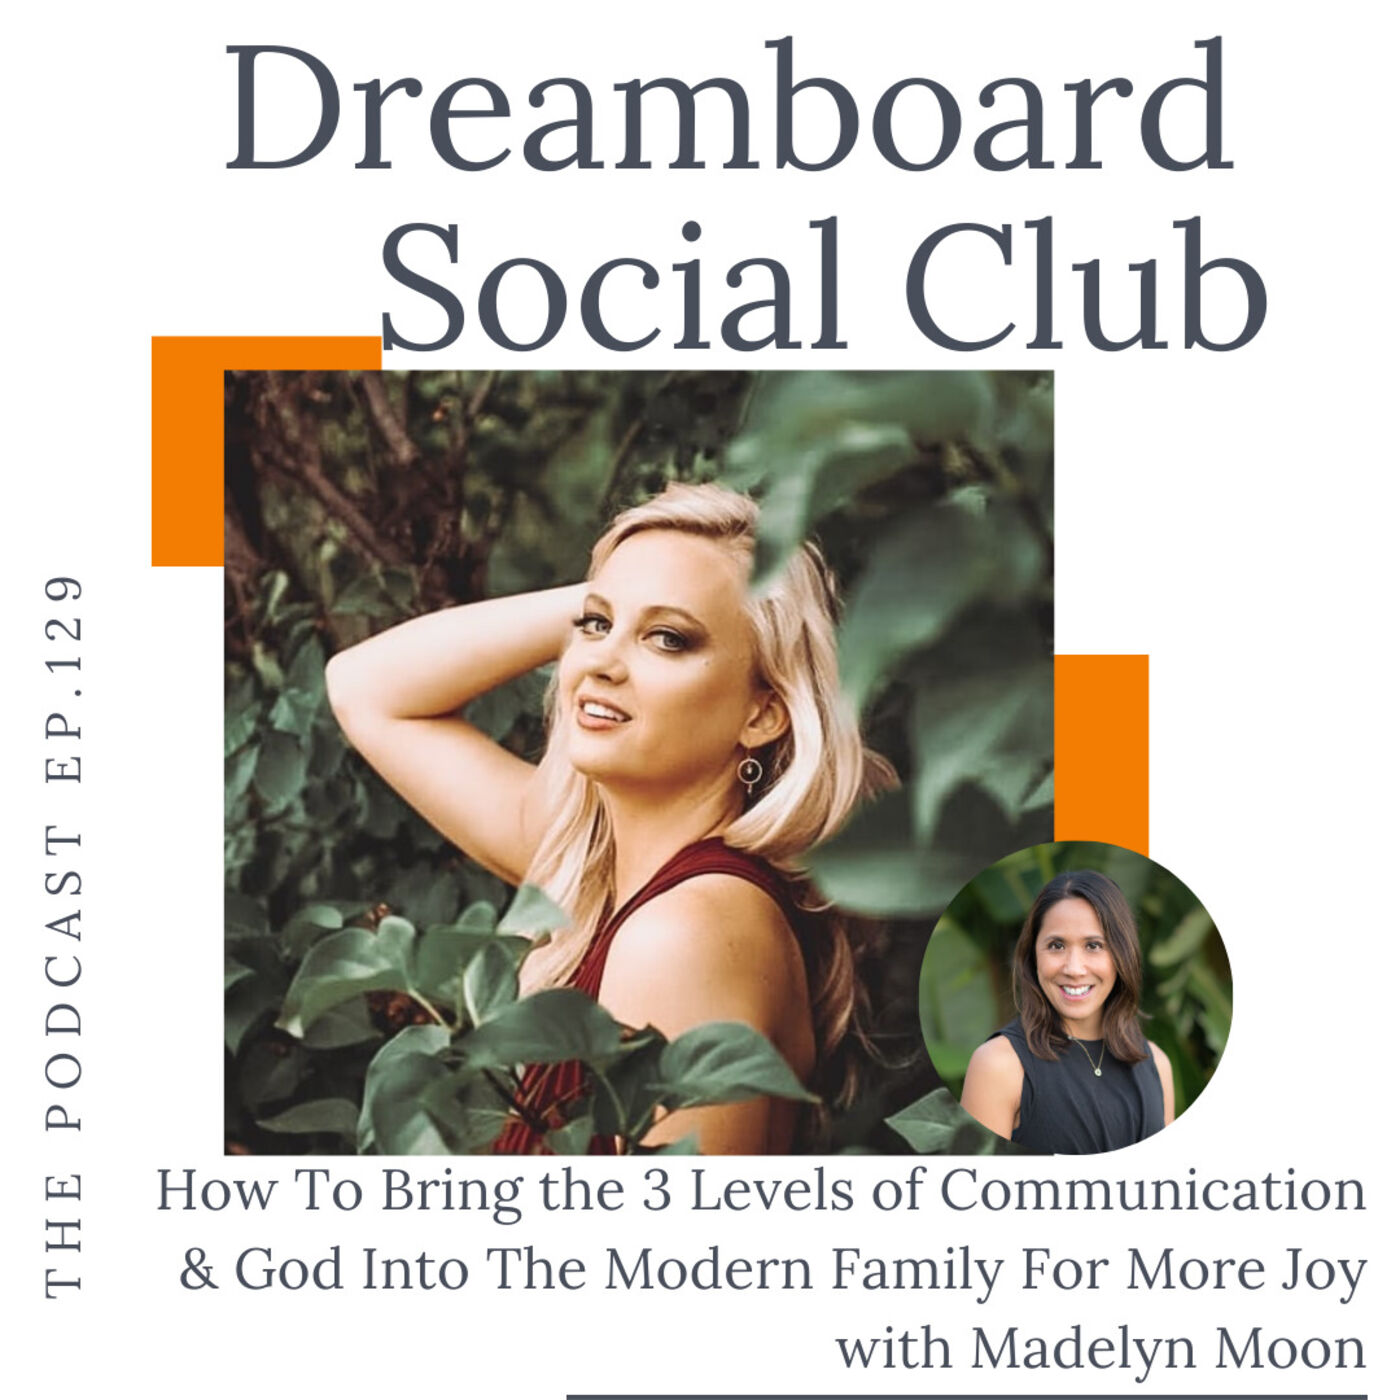 How To Bring the 3 Levels of Communication & God Into The Modern Family For More Joy with Madelyn Moon